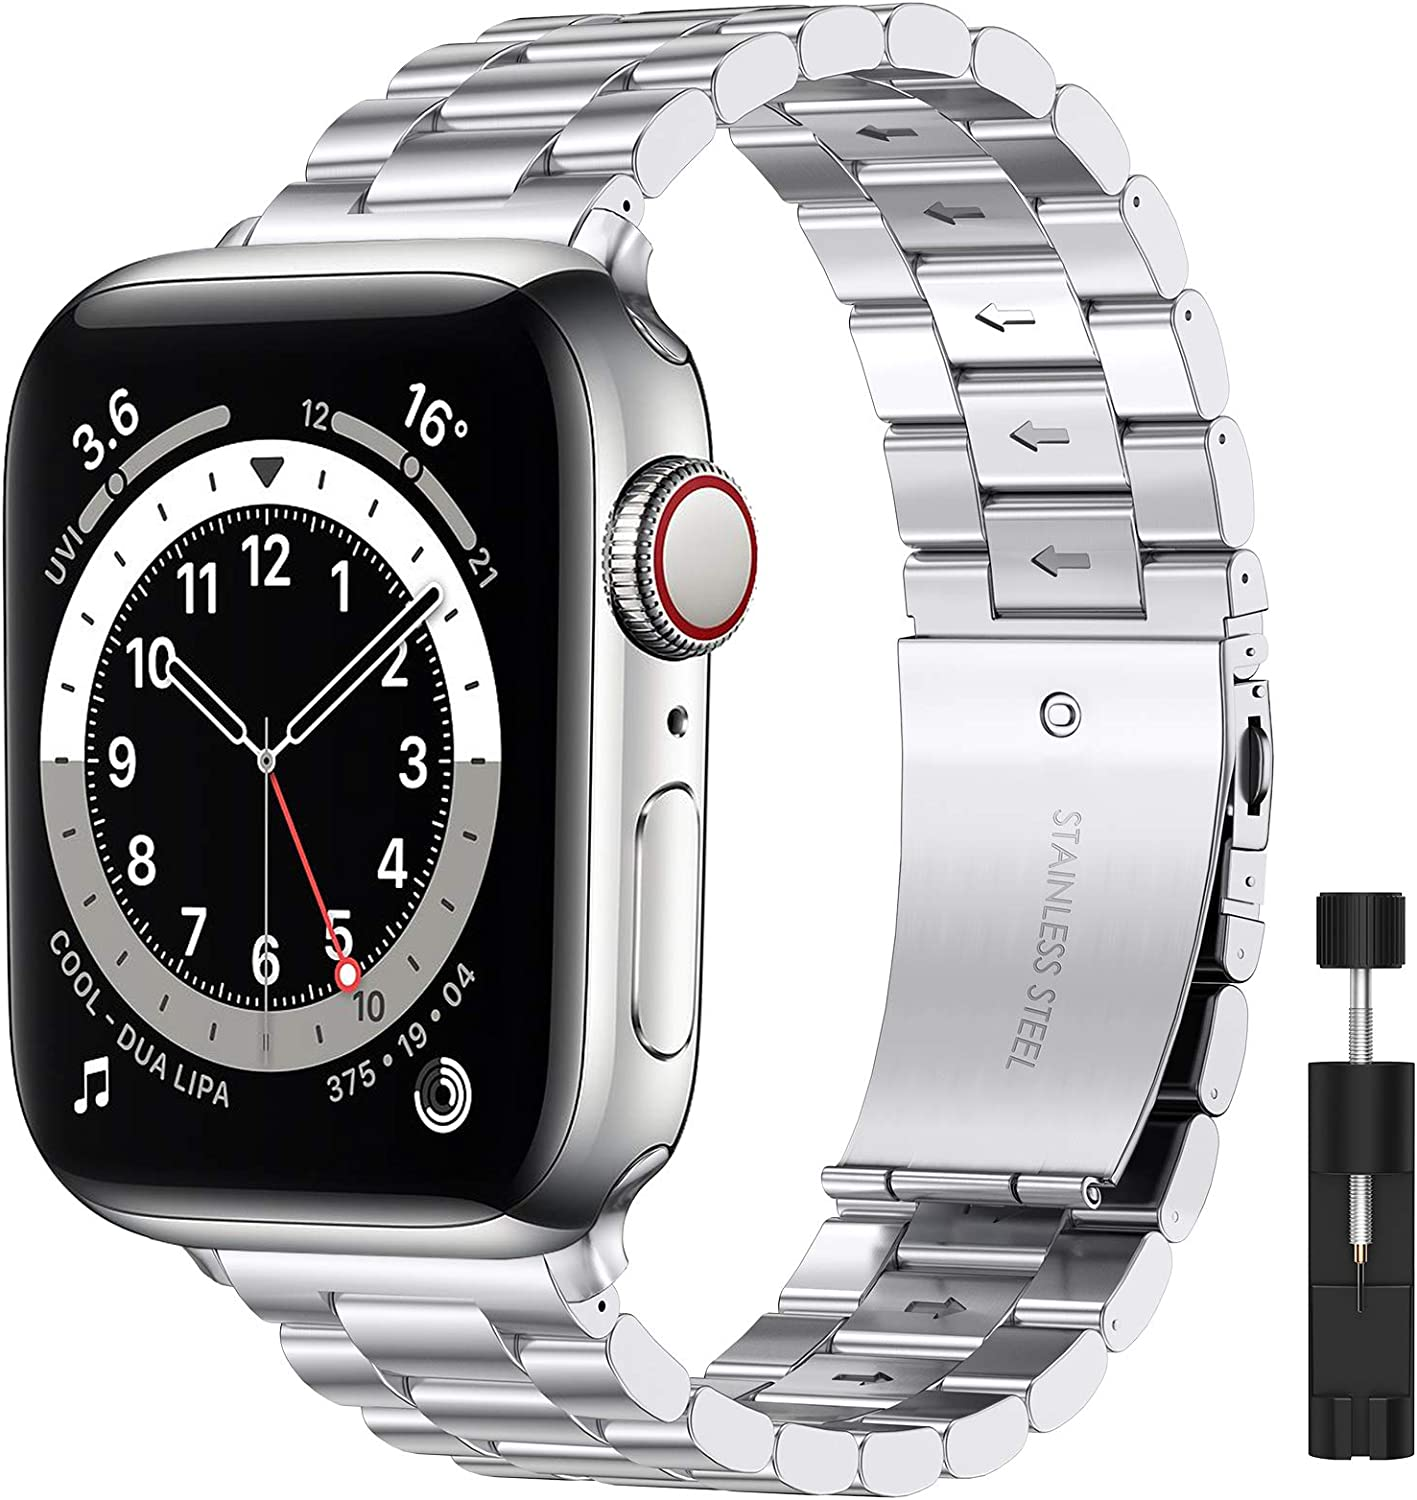 Liwin Metal Band Compatible with Apple Watch Series SE/6/5/4/3/2/1, Series 6 Band for Men Women, Replacement Stainless Steel Business Bracelet Wrist Strap Accessory for iWatch Band (38mm/40mm, Silver)